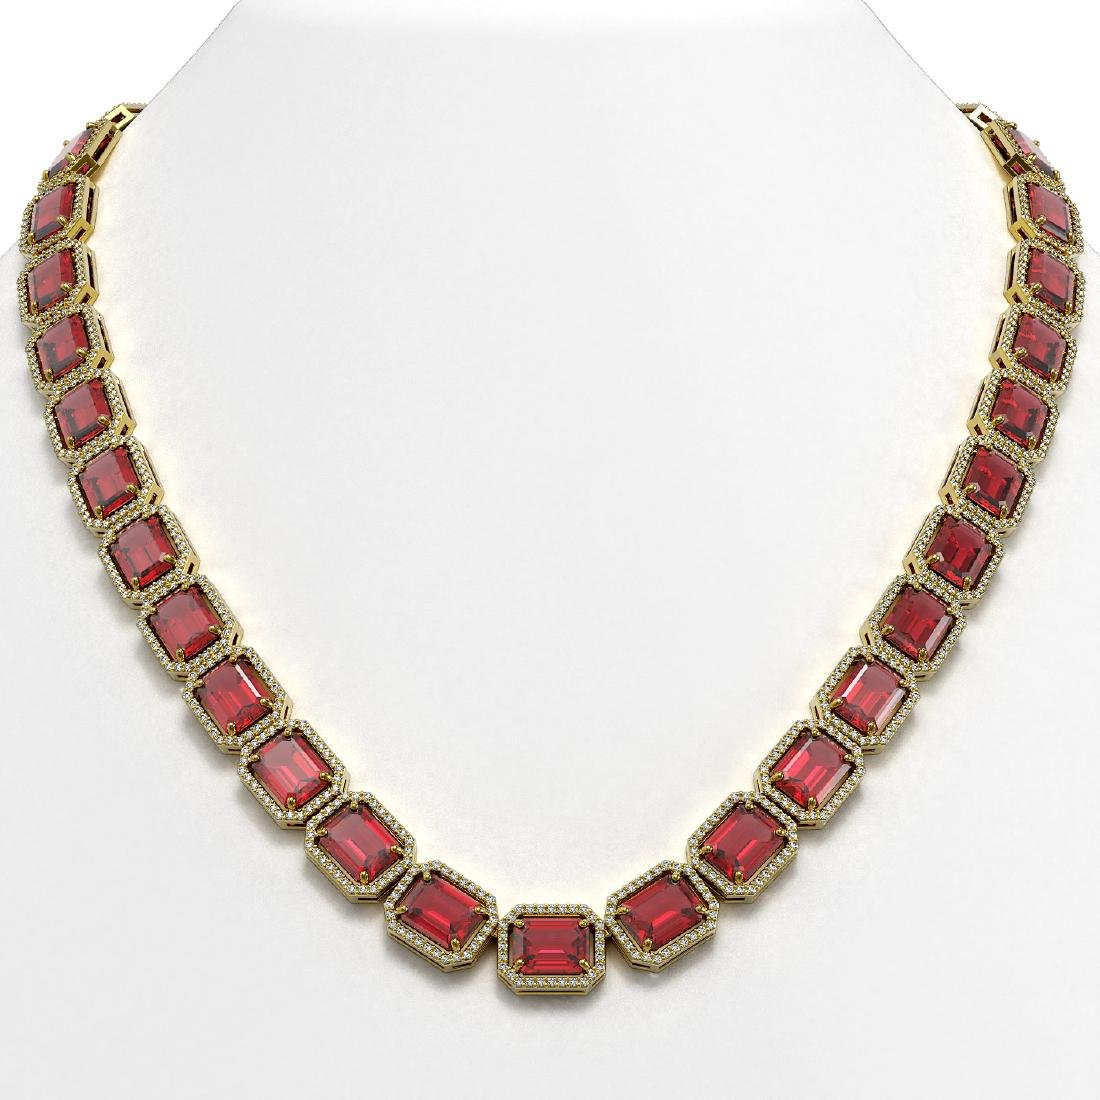 80.32 CTW Tourmaline & Diamond Halo Necklace 10K Yellow